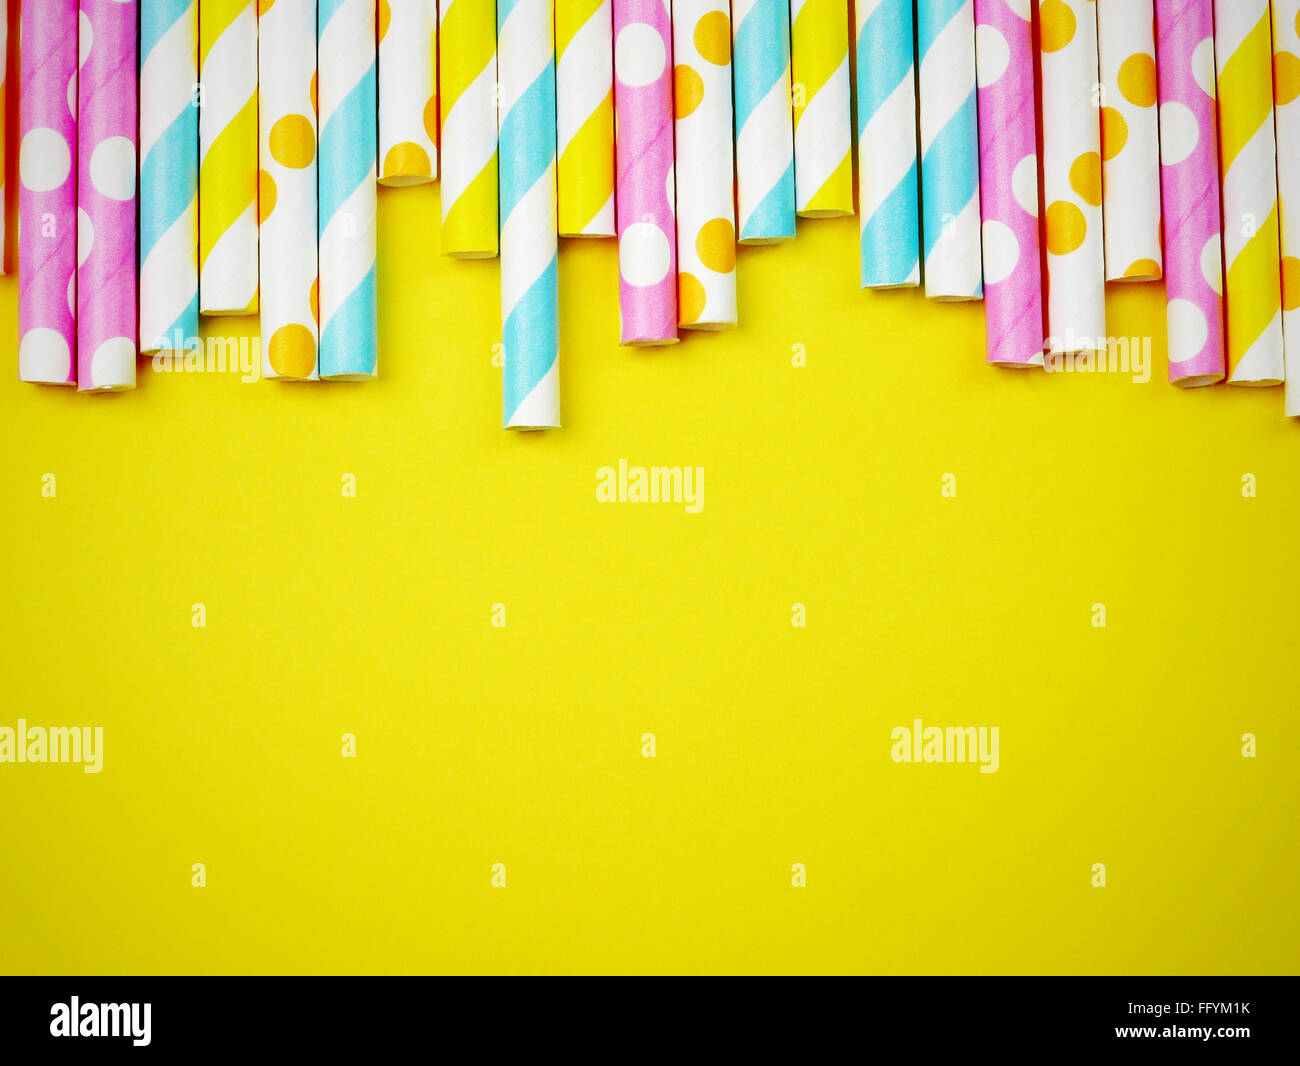 High Angle View Of Colorful Straws Against Yellow Background - Stock Image